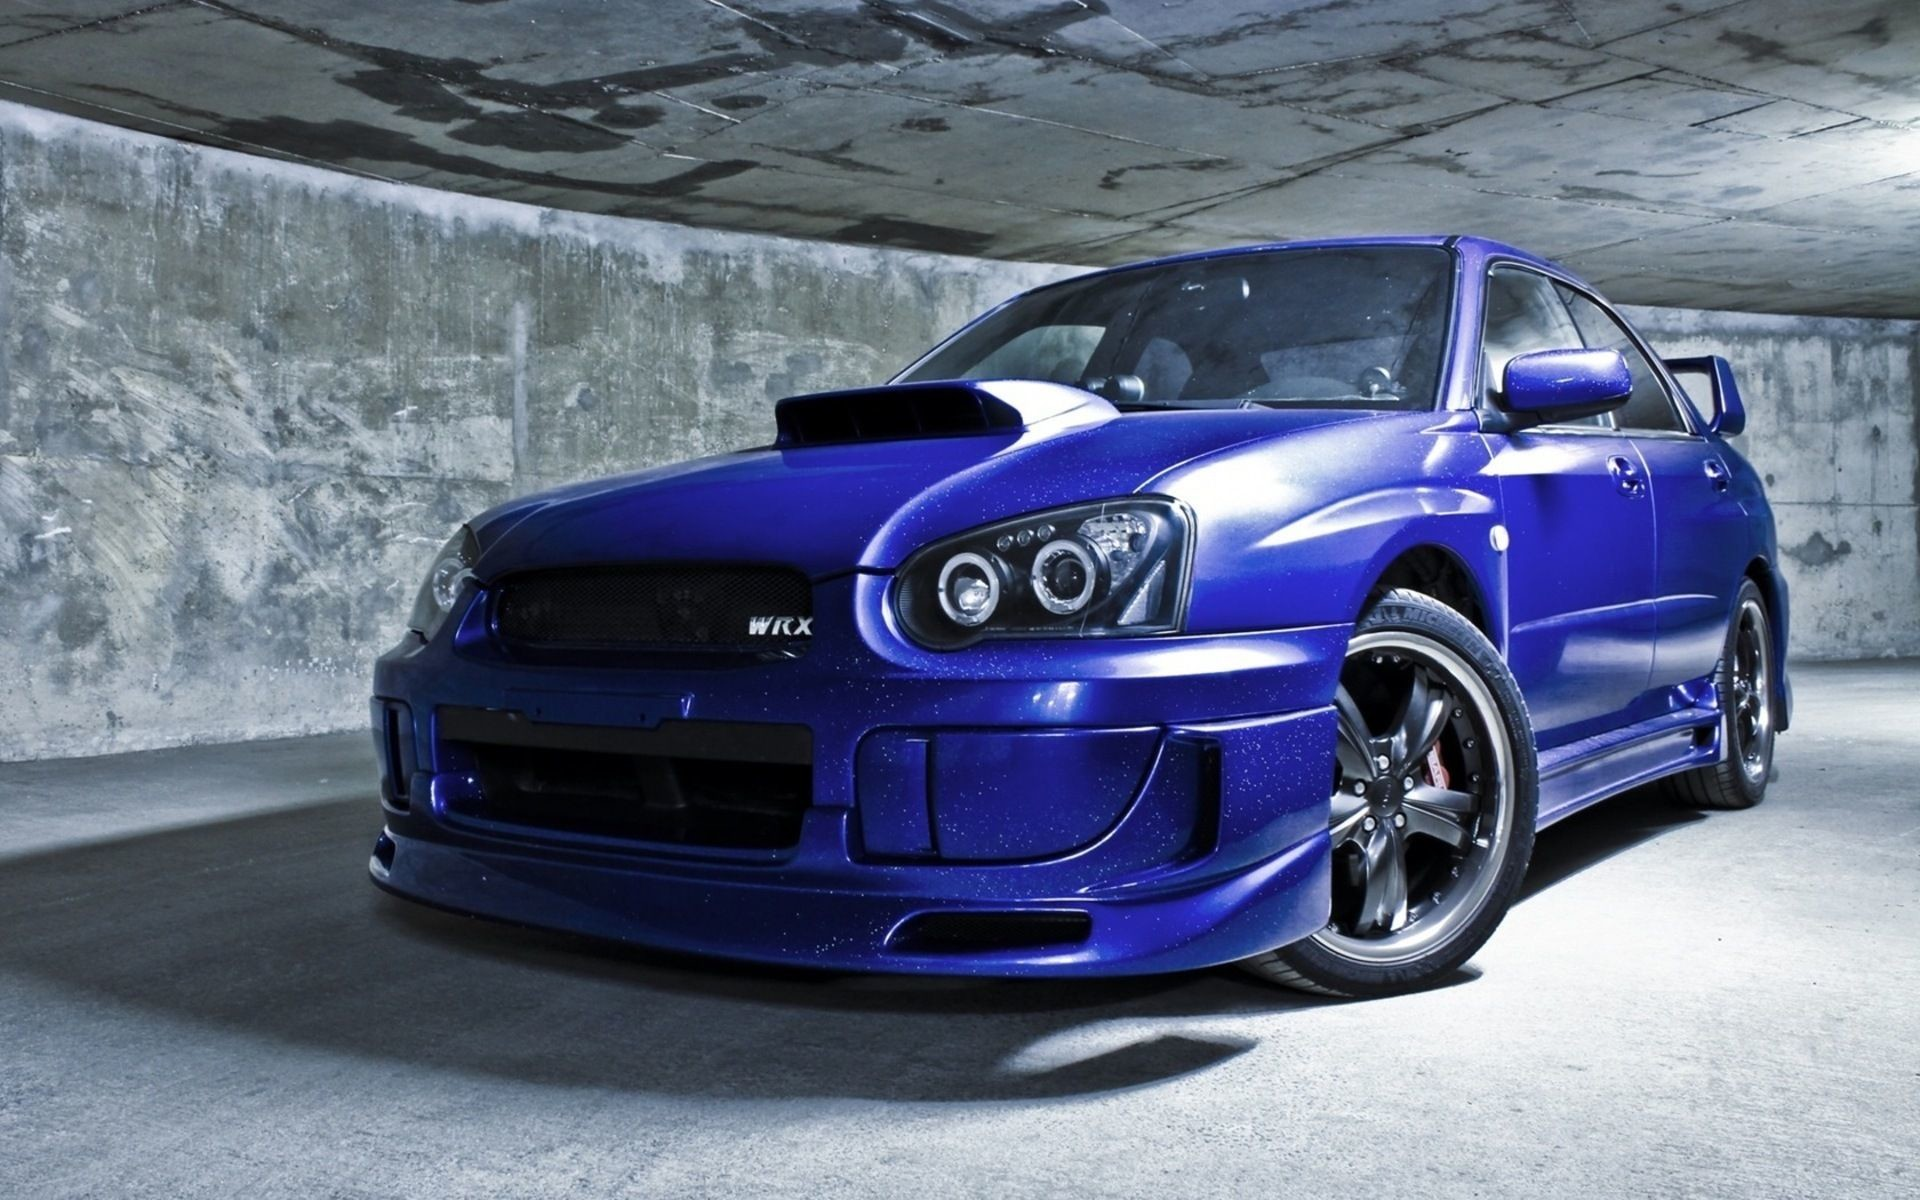 Subaru Impreza WRX On Snow HD desktop wallpaper : High Definition 1920×1200  Subaru Wallpaper